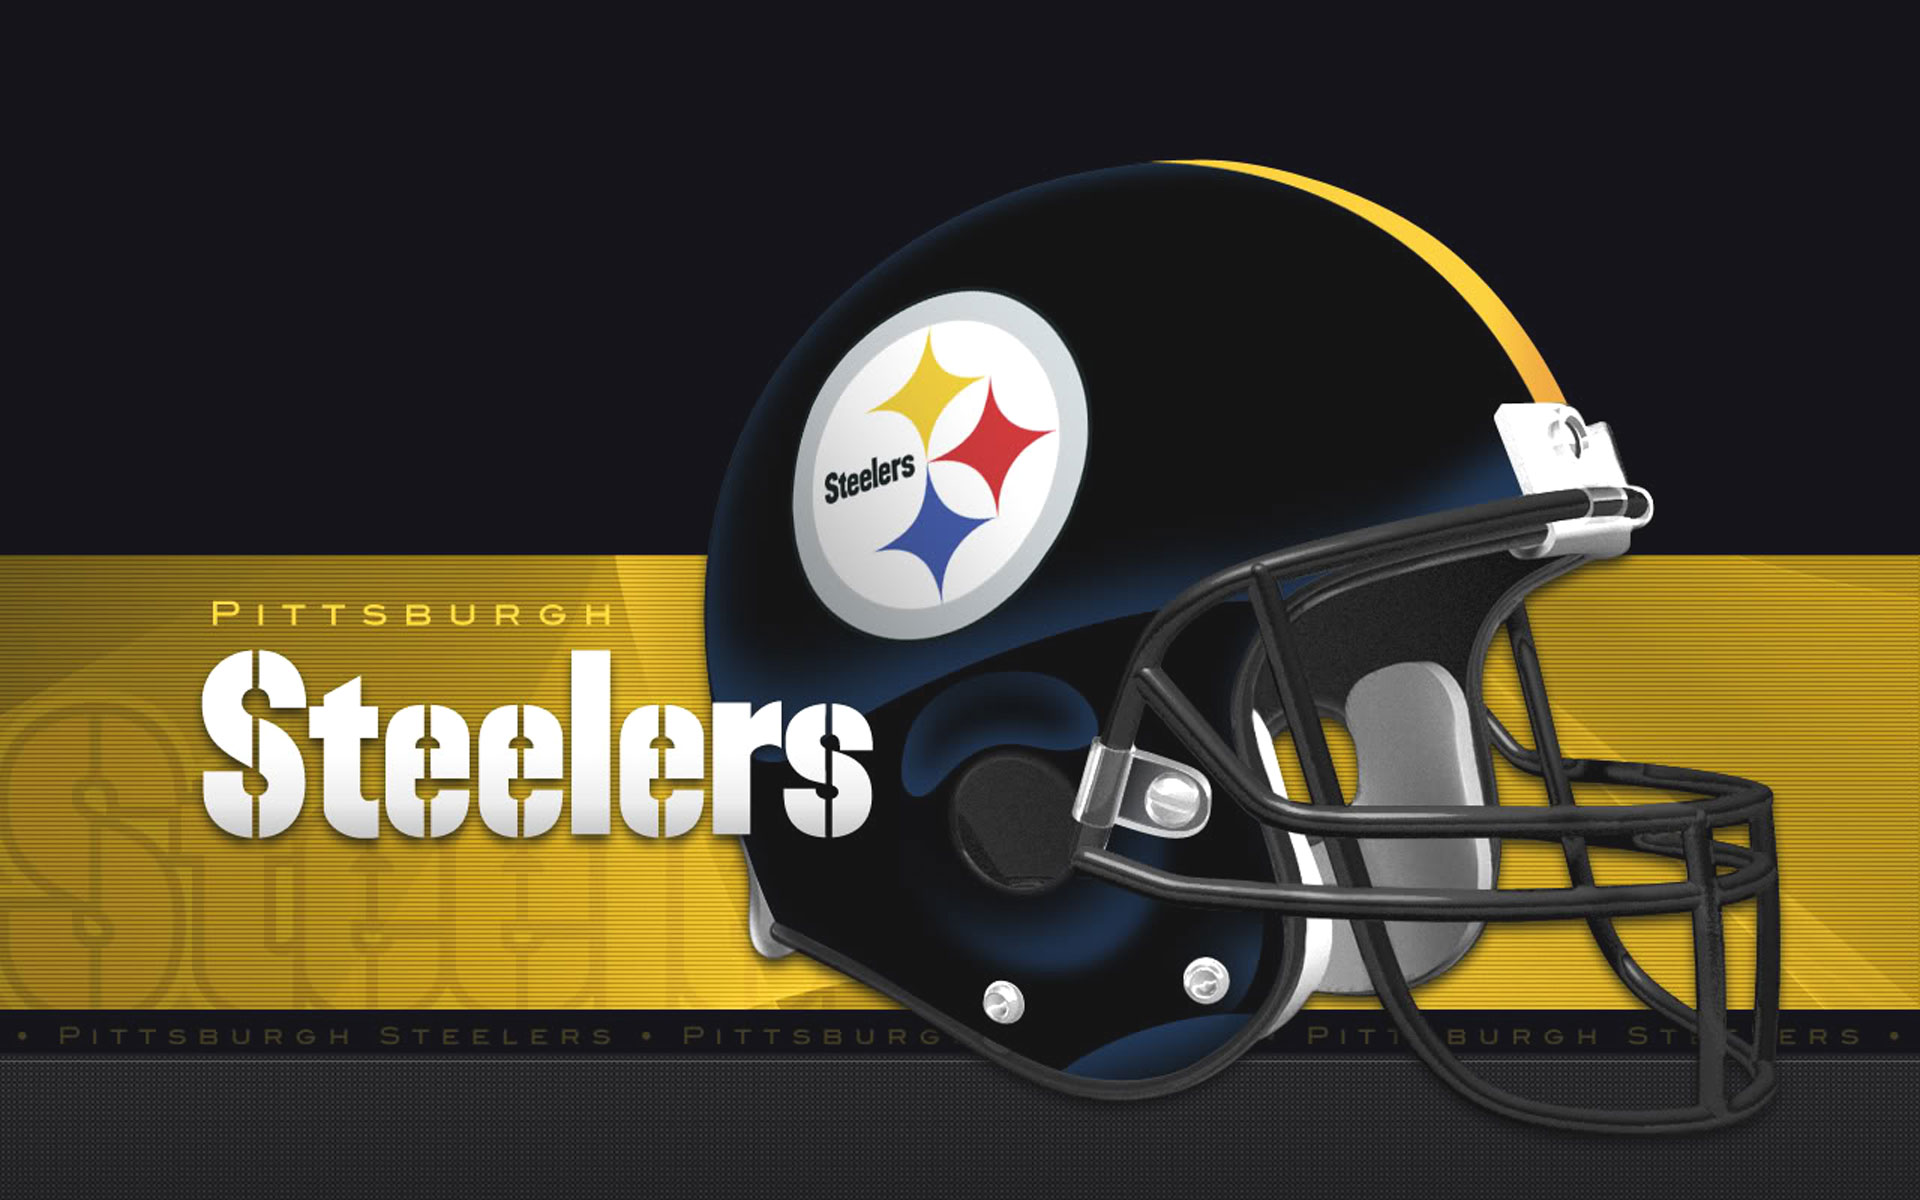 Steelers wallpaper background image Pittsburgh Steelers wallpapers 1920x1200